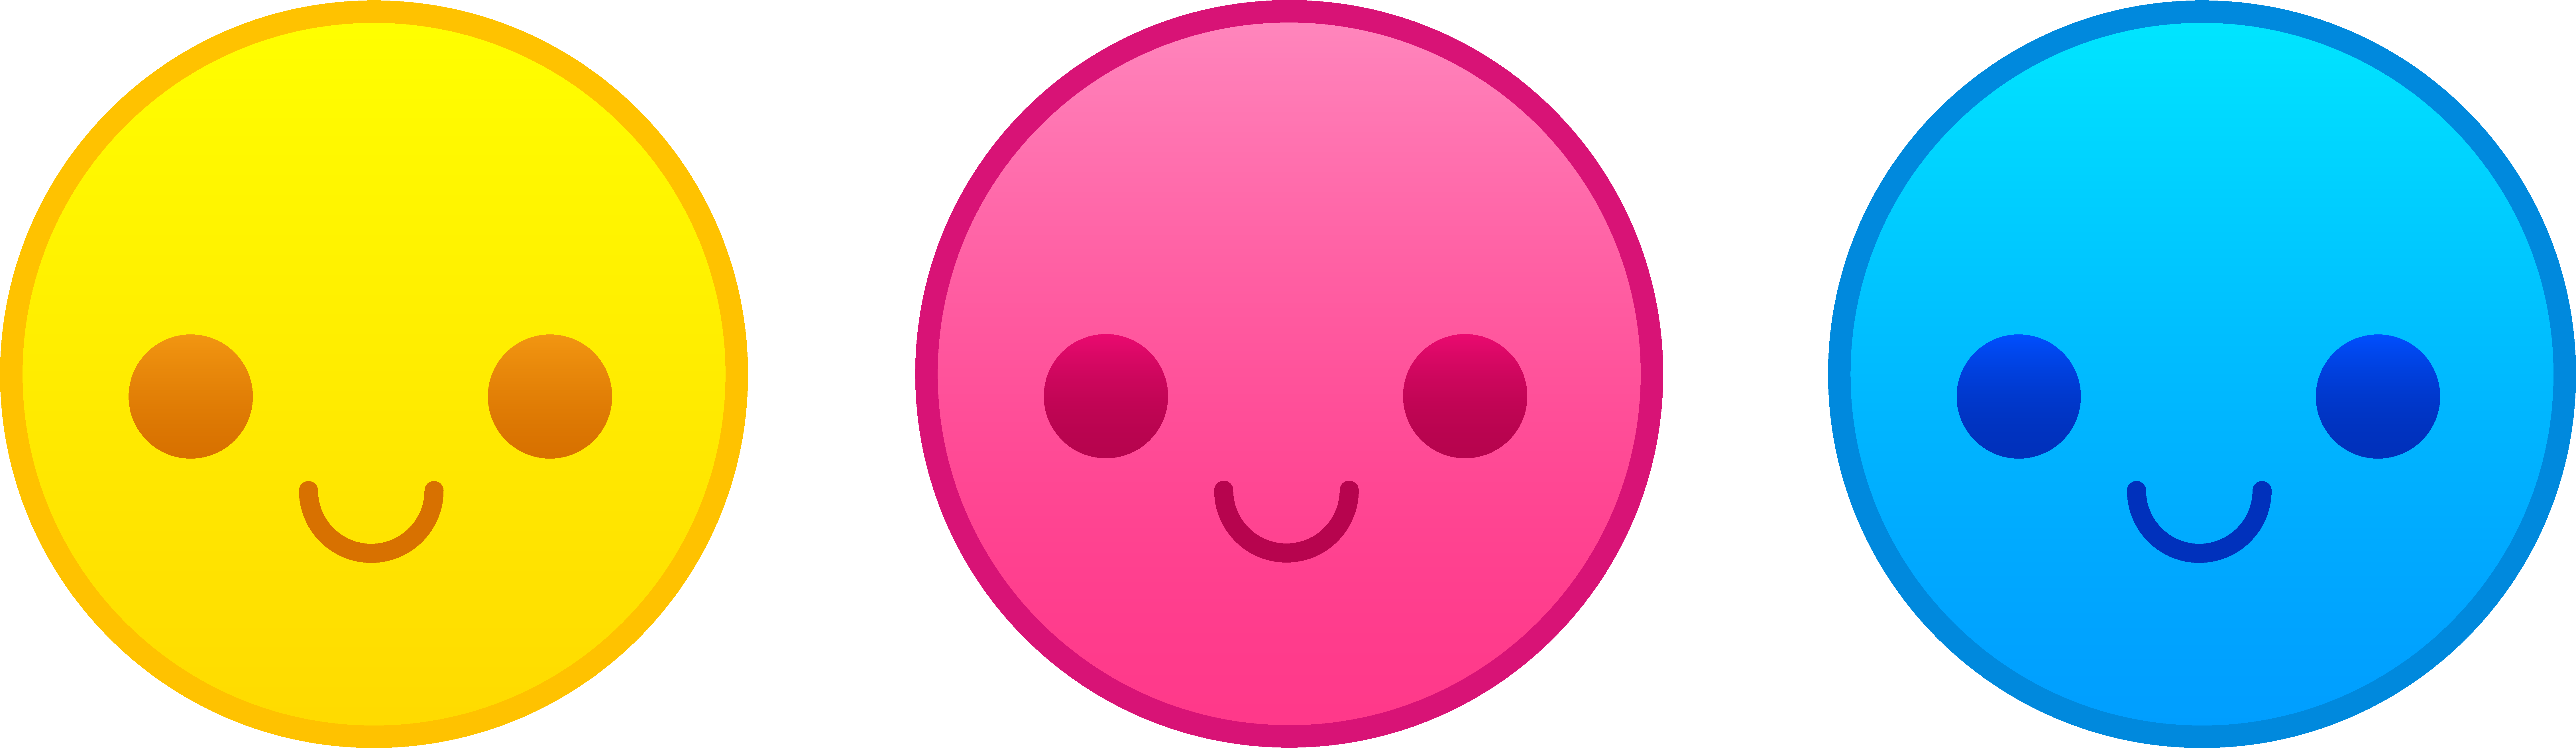 Free Clip Art Smiley Faces Emotions - Cliparts.co - Cute Smiley Face Clip Art